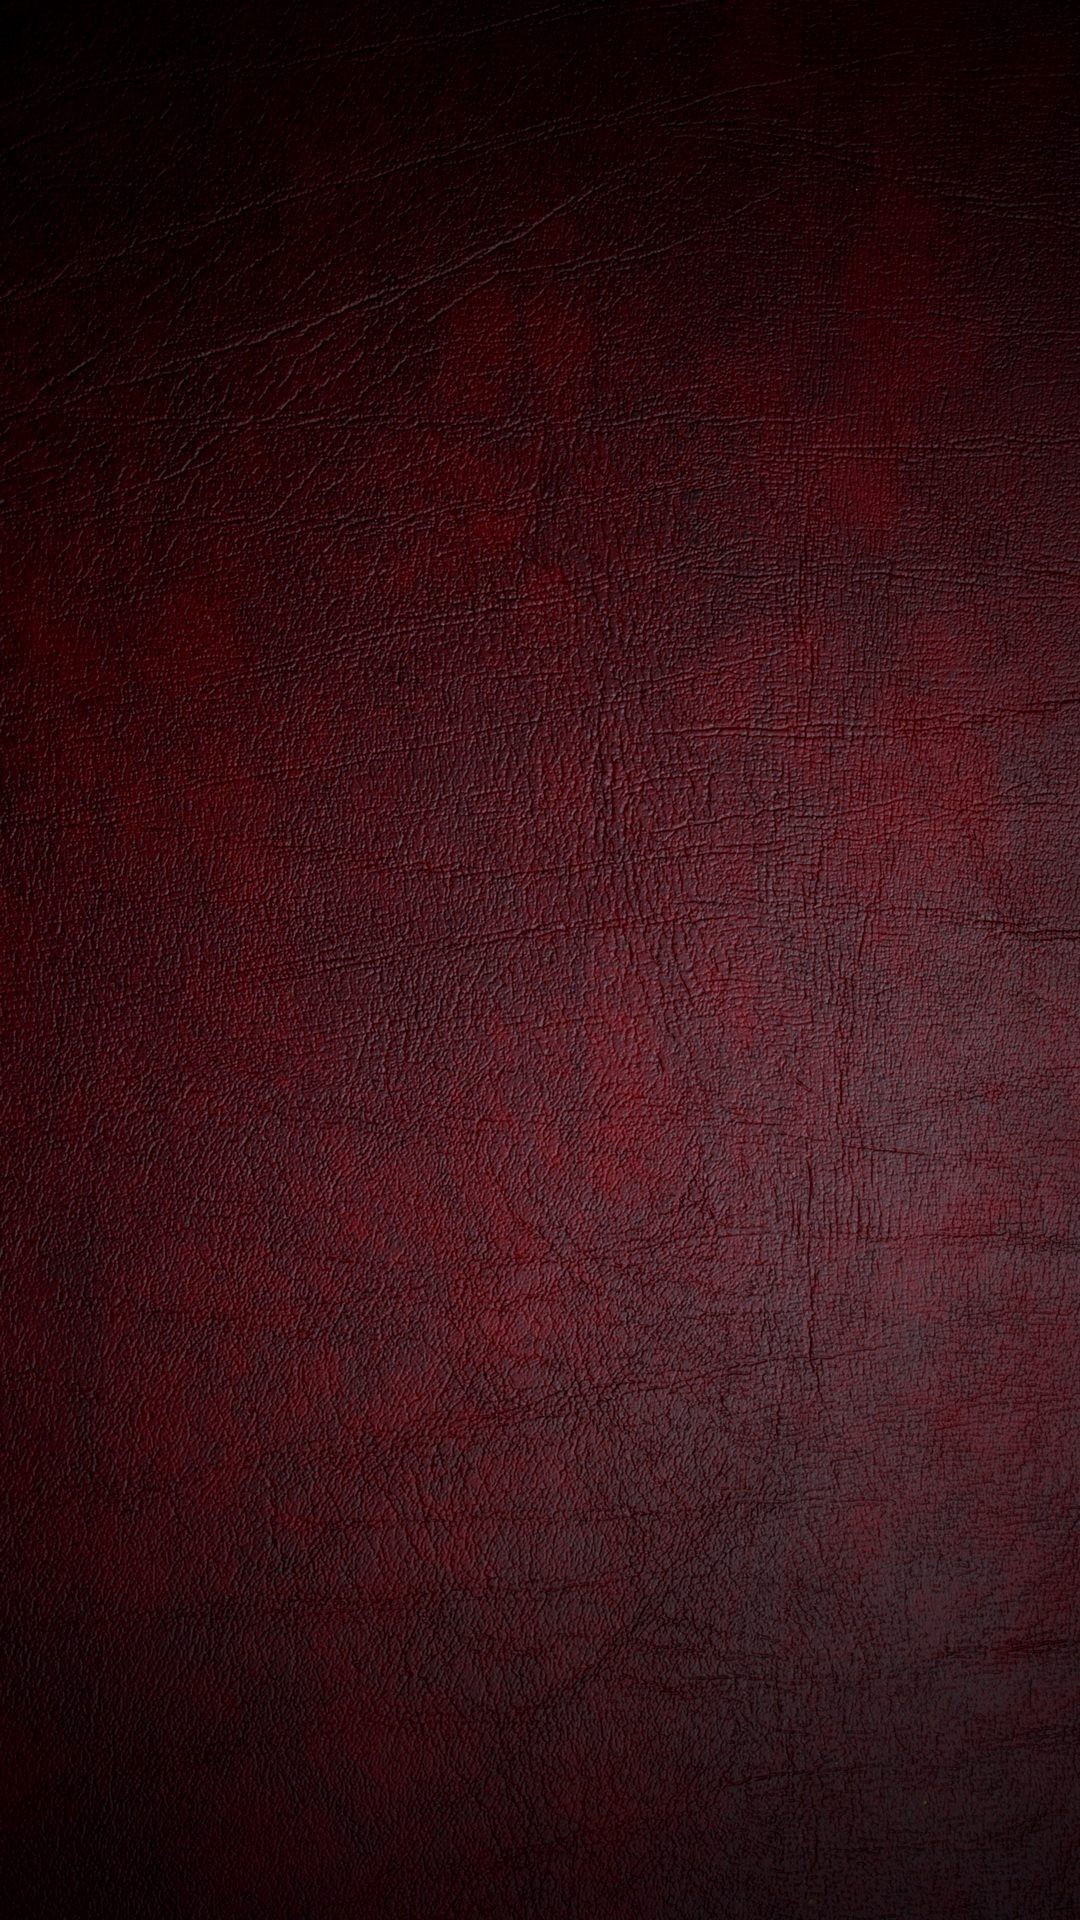 Wallpapers For > Red And Black Wallpaper Hd Iphone   iPhone6Plus壁紙 .